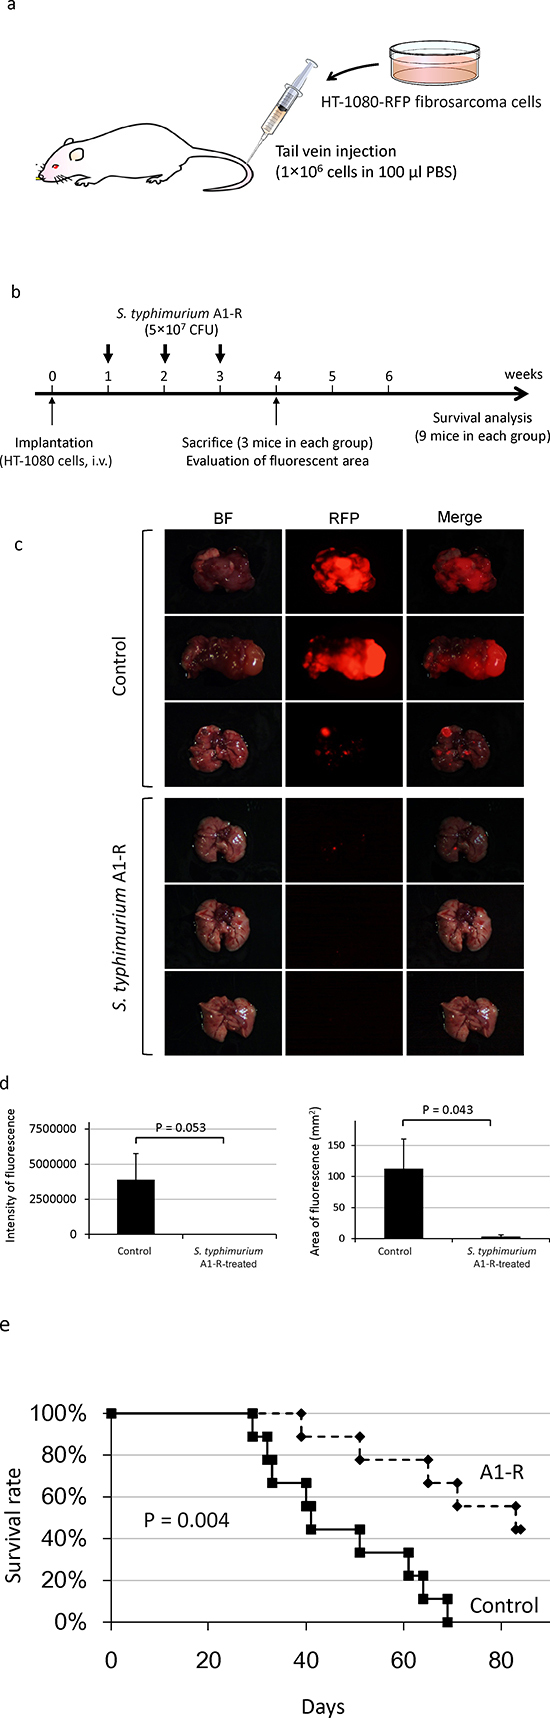 Efficacy of S. typhimurium A1-R on experimental lung metastasis of fibrosarcoma.